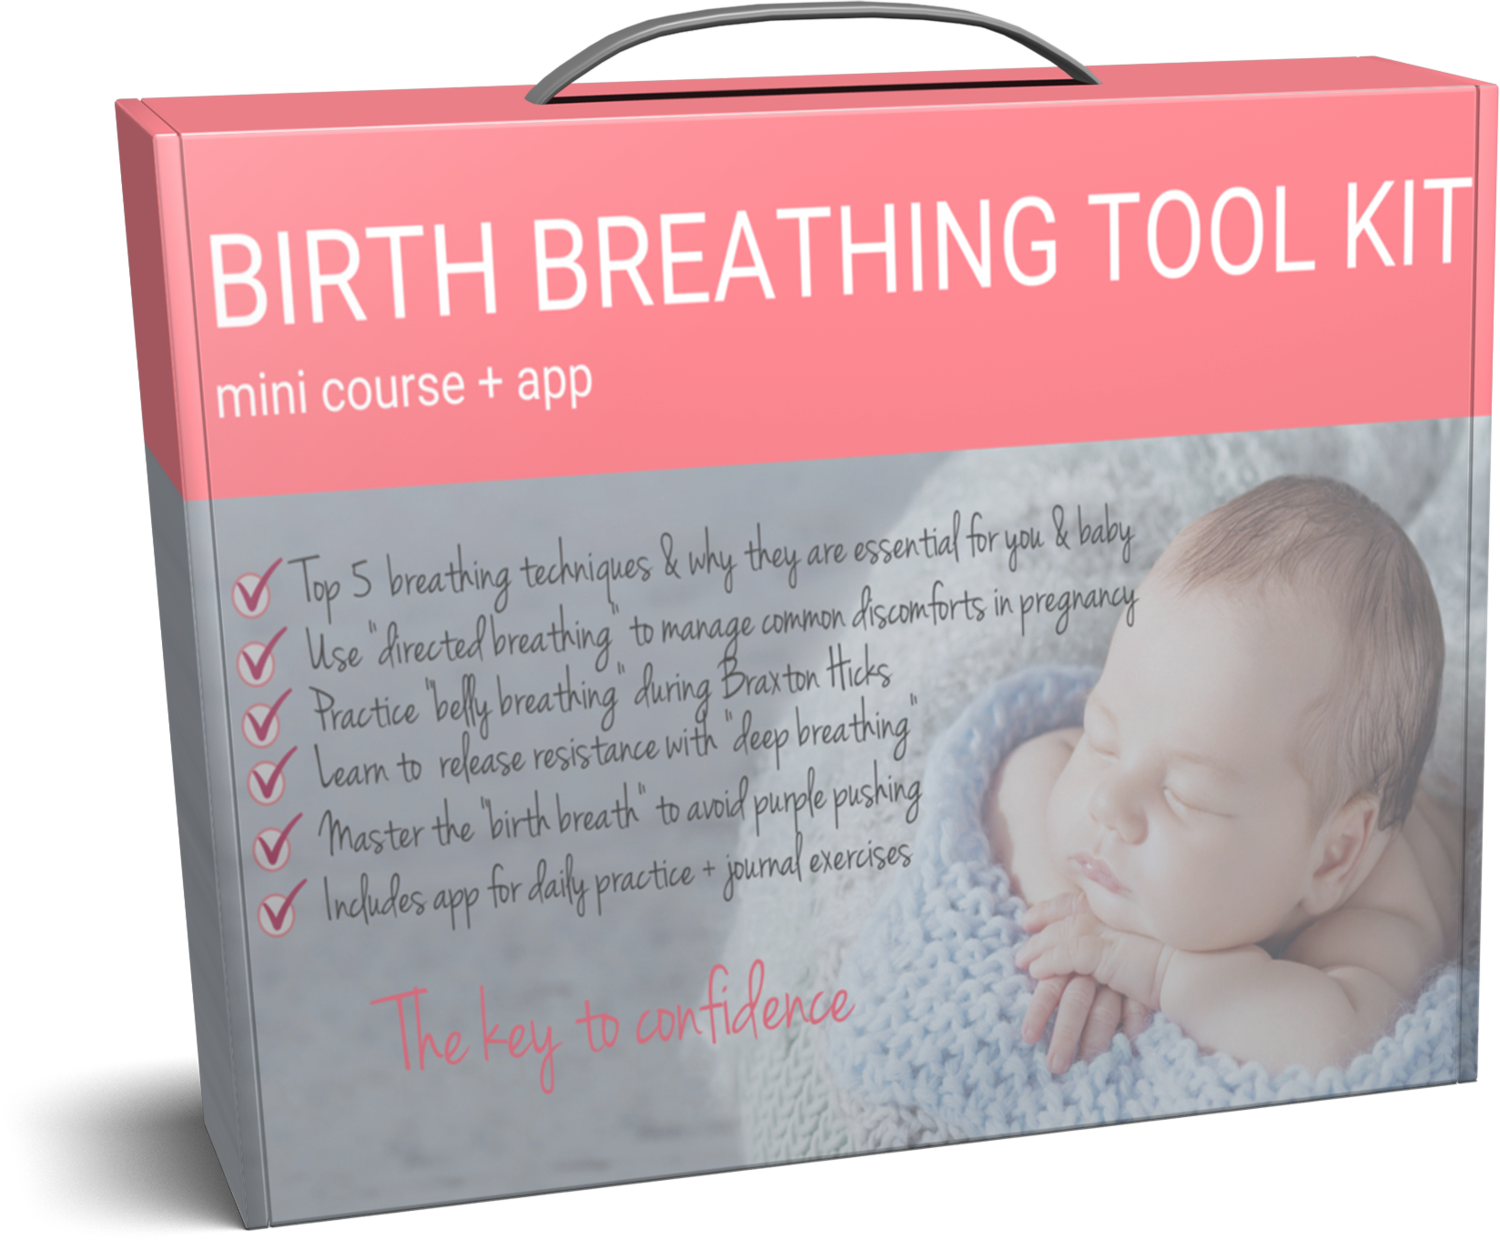 Your most powerful tool during labor and birth